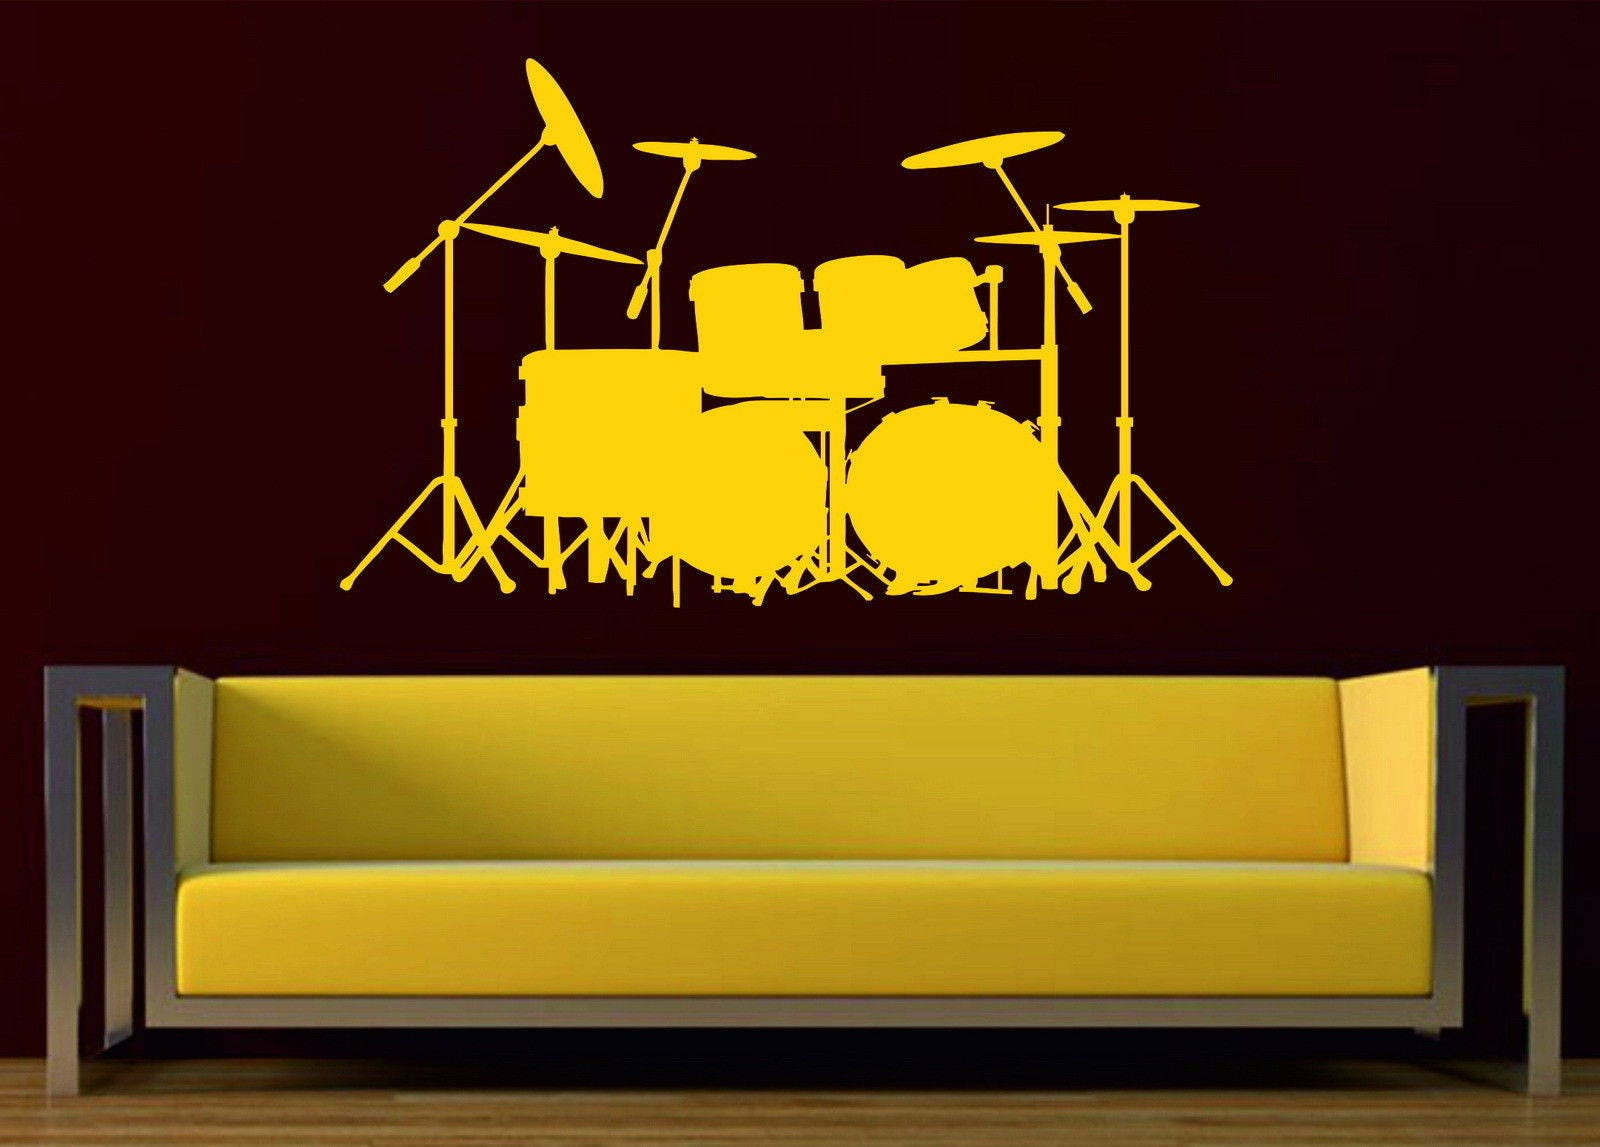 Amazing Drum Set Wall Art Pictures Inspiration - The Wall Art ...